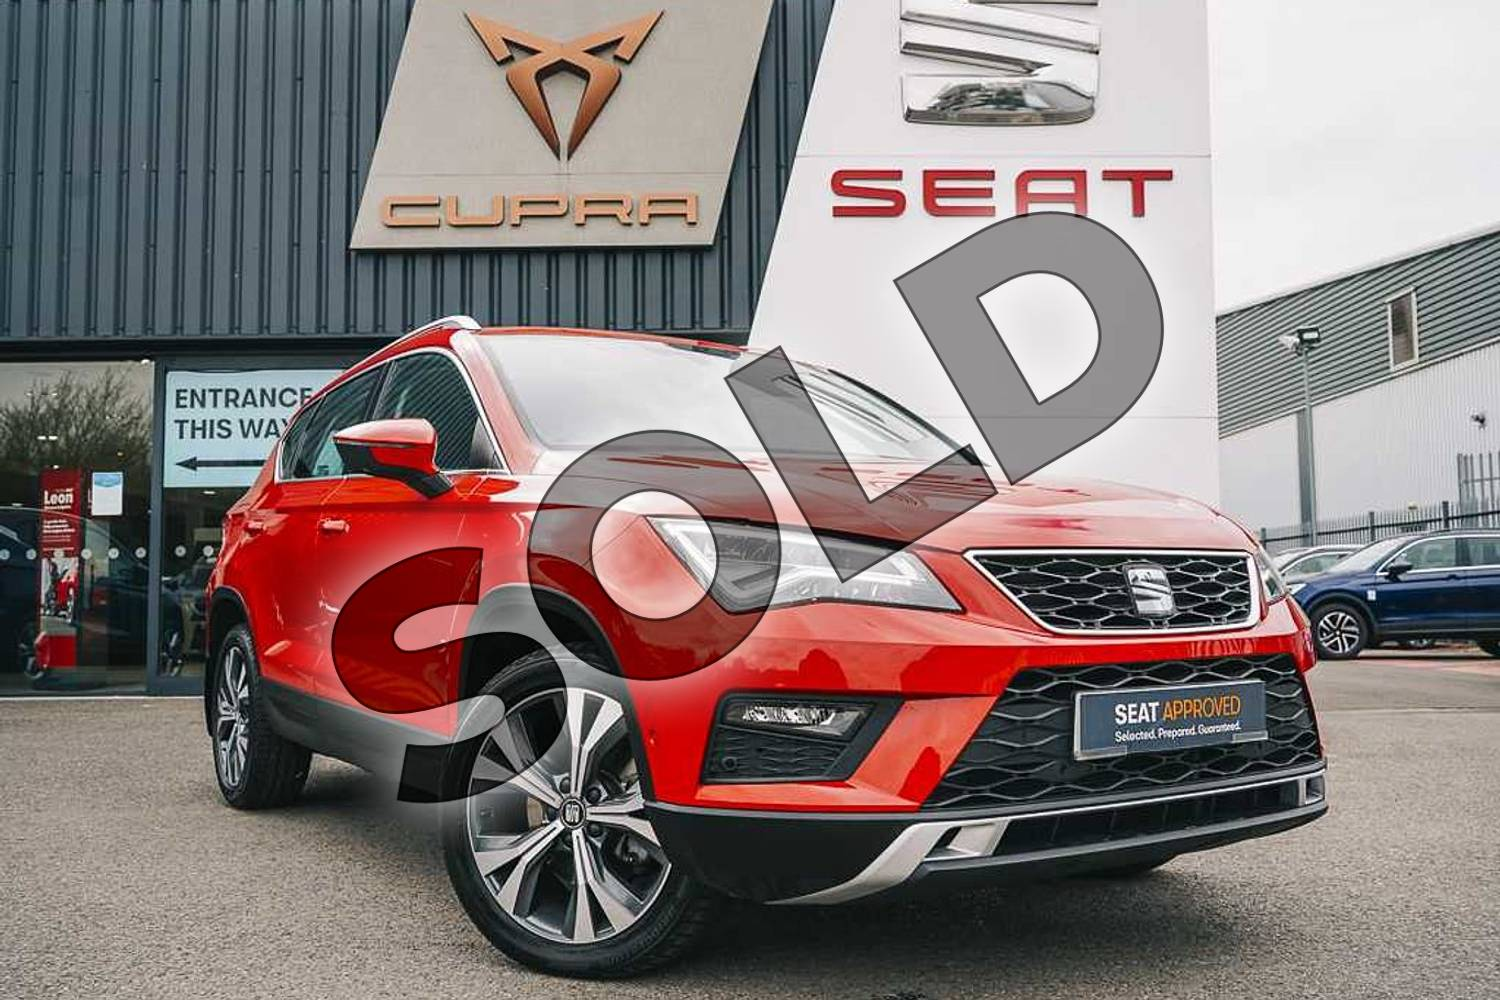 2019 SEAT Ateca Diesel Estate 2.0 TDI SE Technology (EZ) 5dr in Red at Listers SEAT Coventry